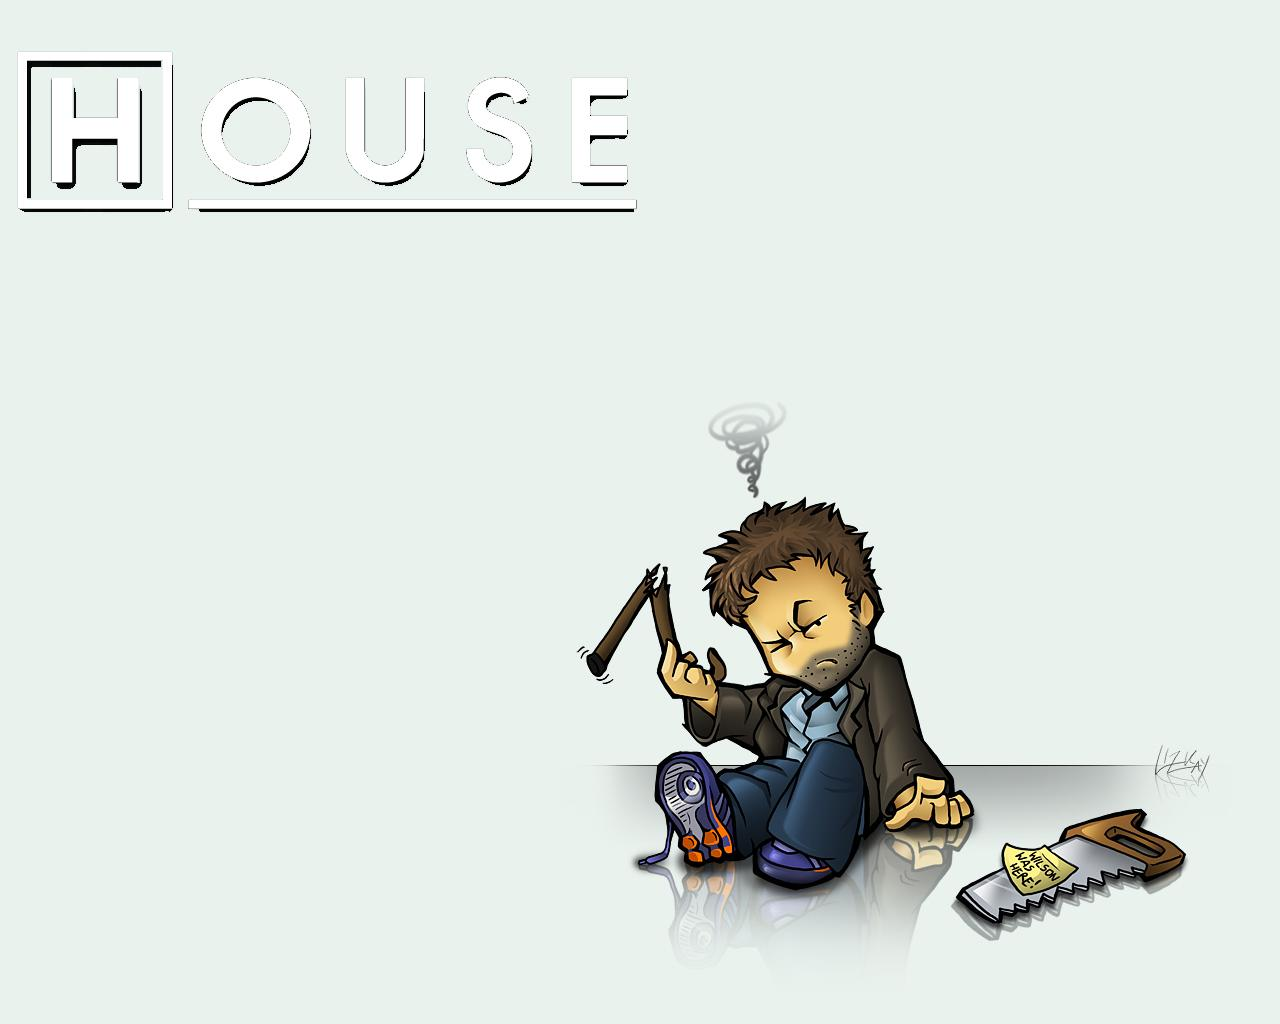 Dr House Wallpaper 1280x1024 Dr House Hugh Laurie Gregory House 1280x1024